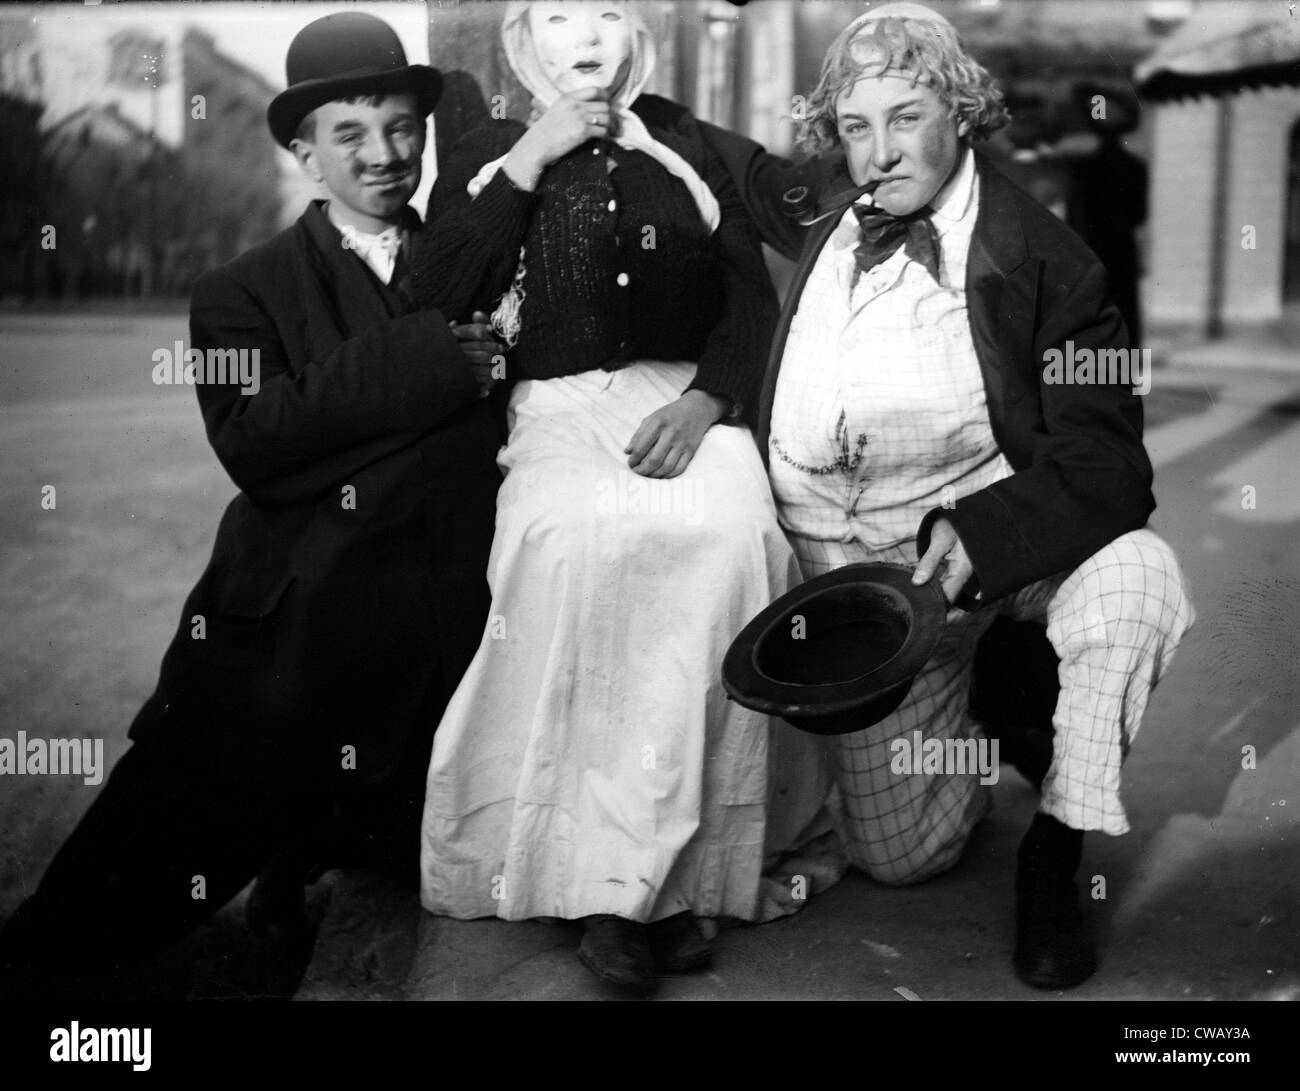 Halloween family dressed in costumes circa 1930s.  sc 1 st  Alamy & Halloween family dressed in costumes circa 1930s Stock Photo ...